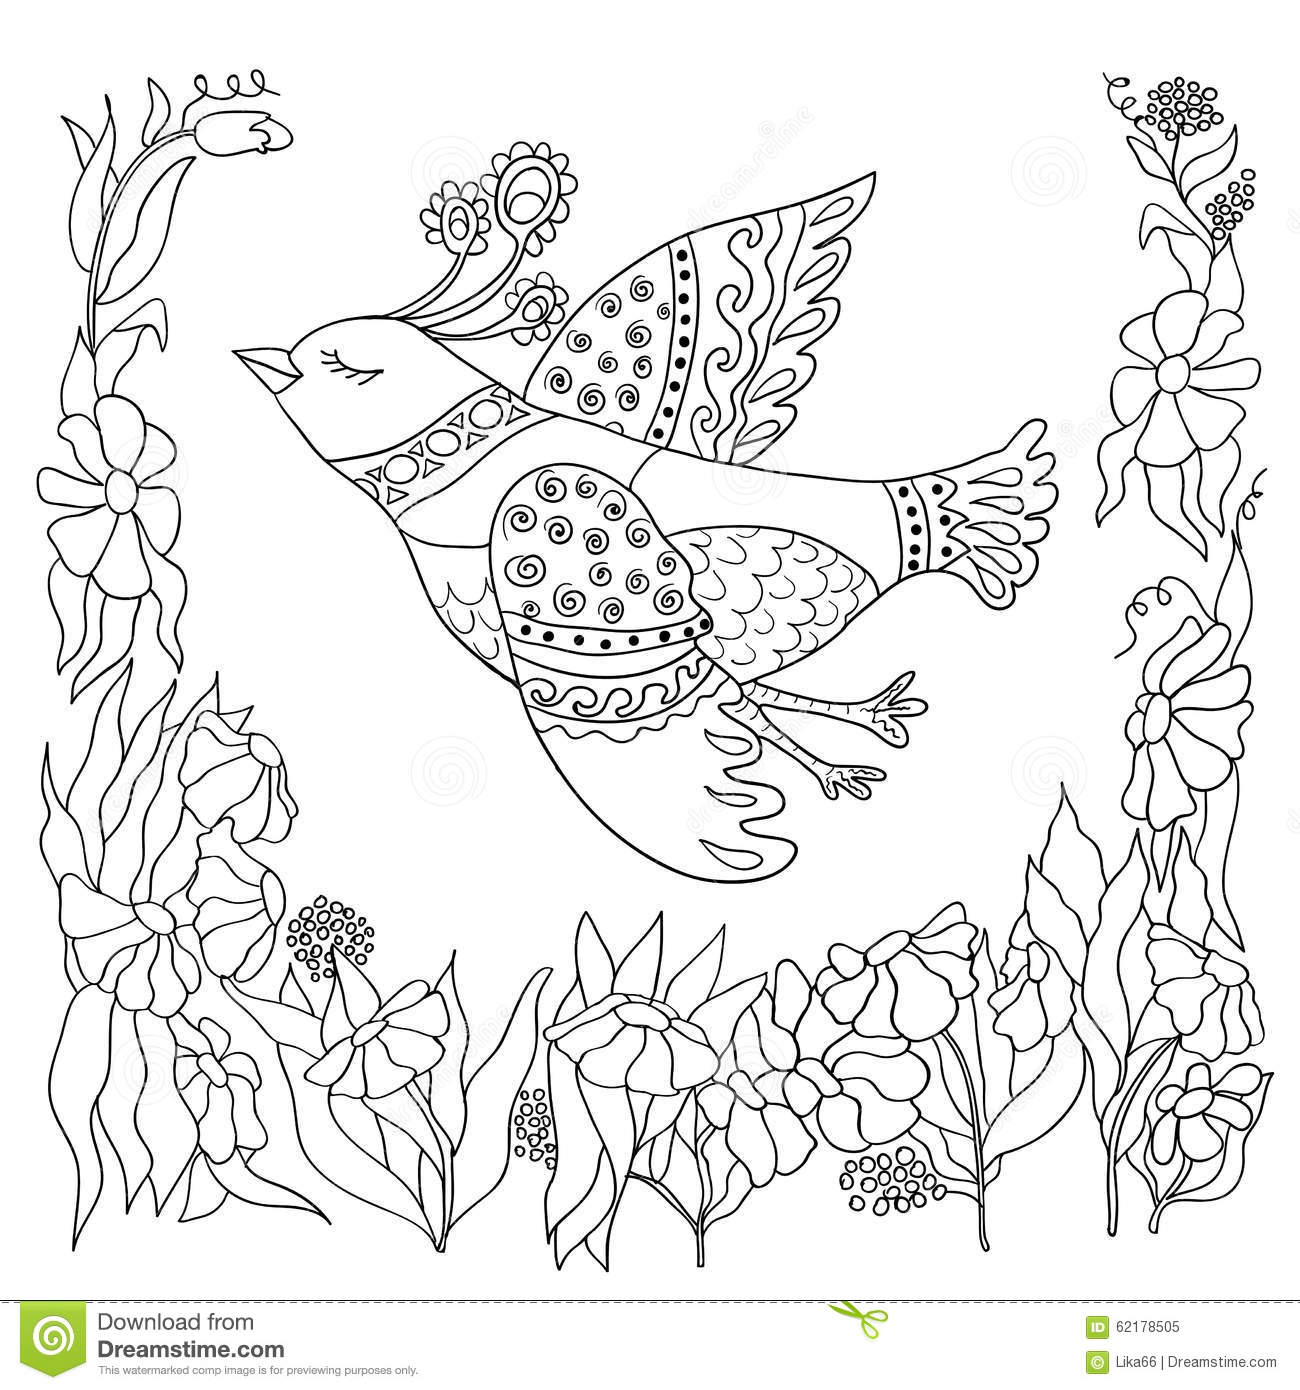 Coloring Page With Doodle Design Stock Vector